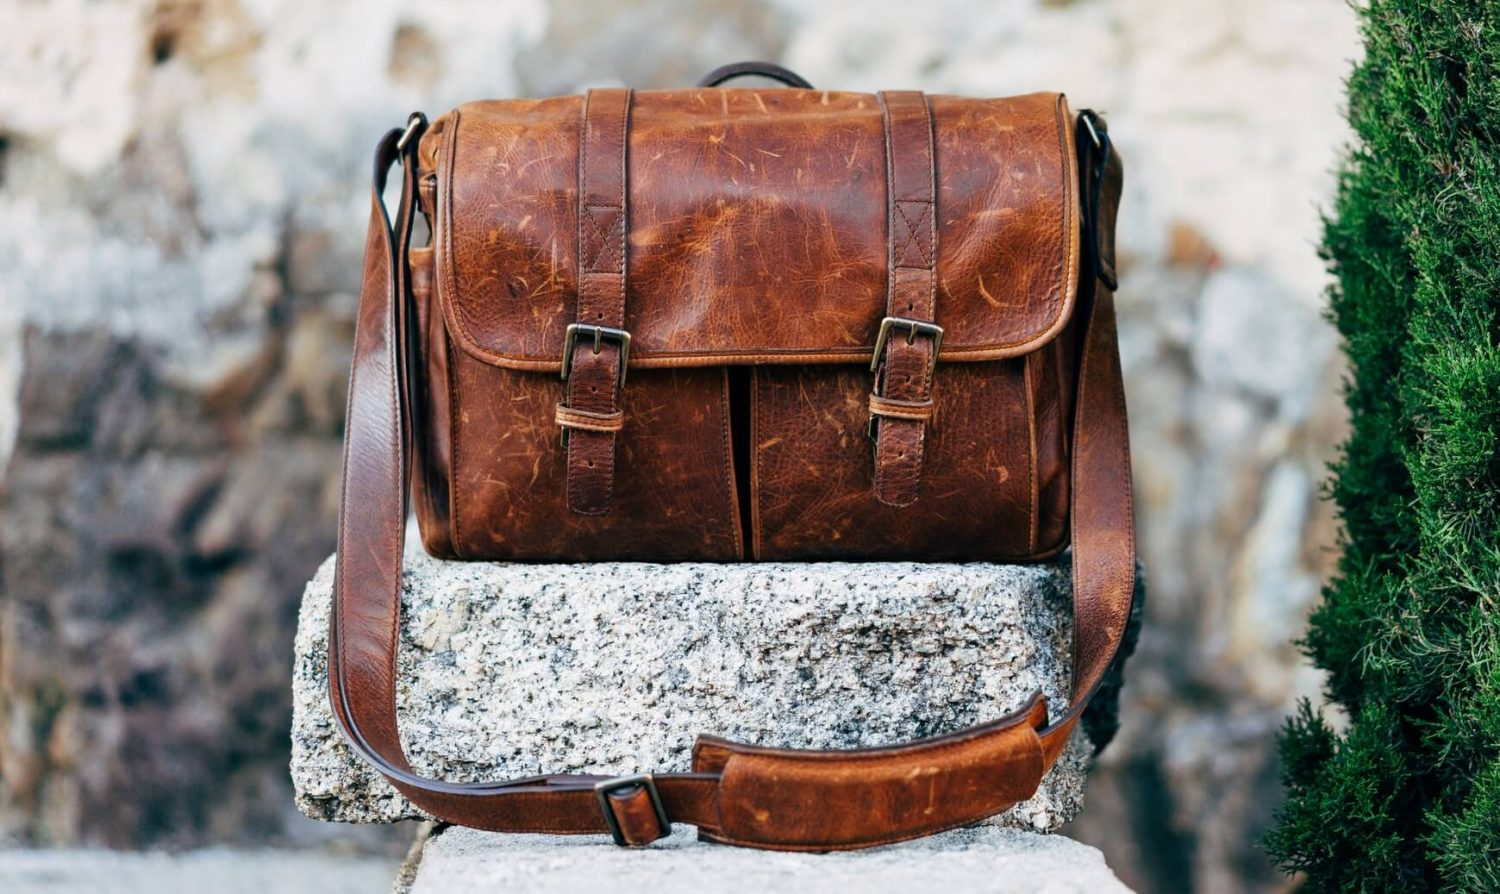 Vegan Biotech Company Modern Meadow Poised to Disrupt $100 Billion Leather Industry